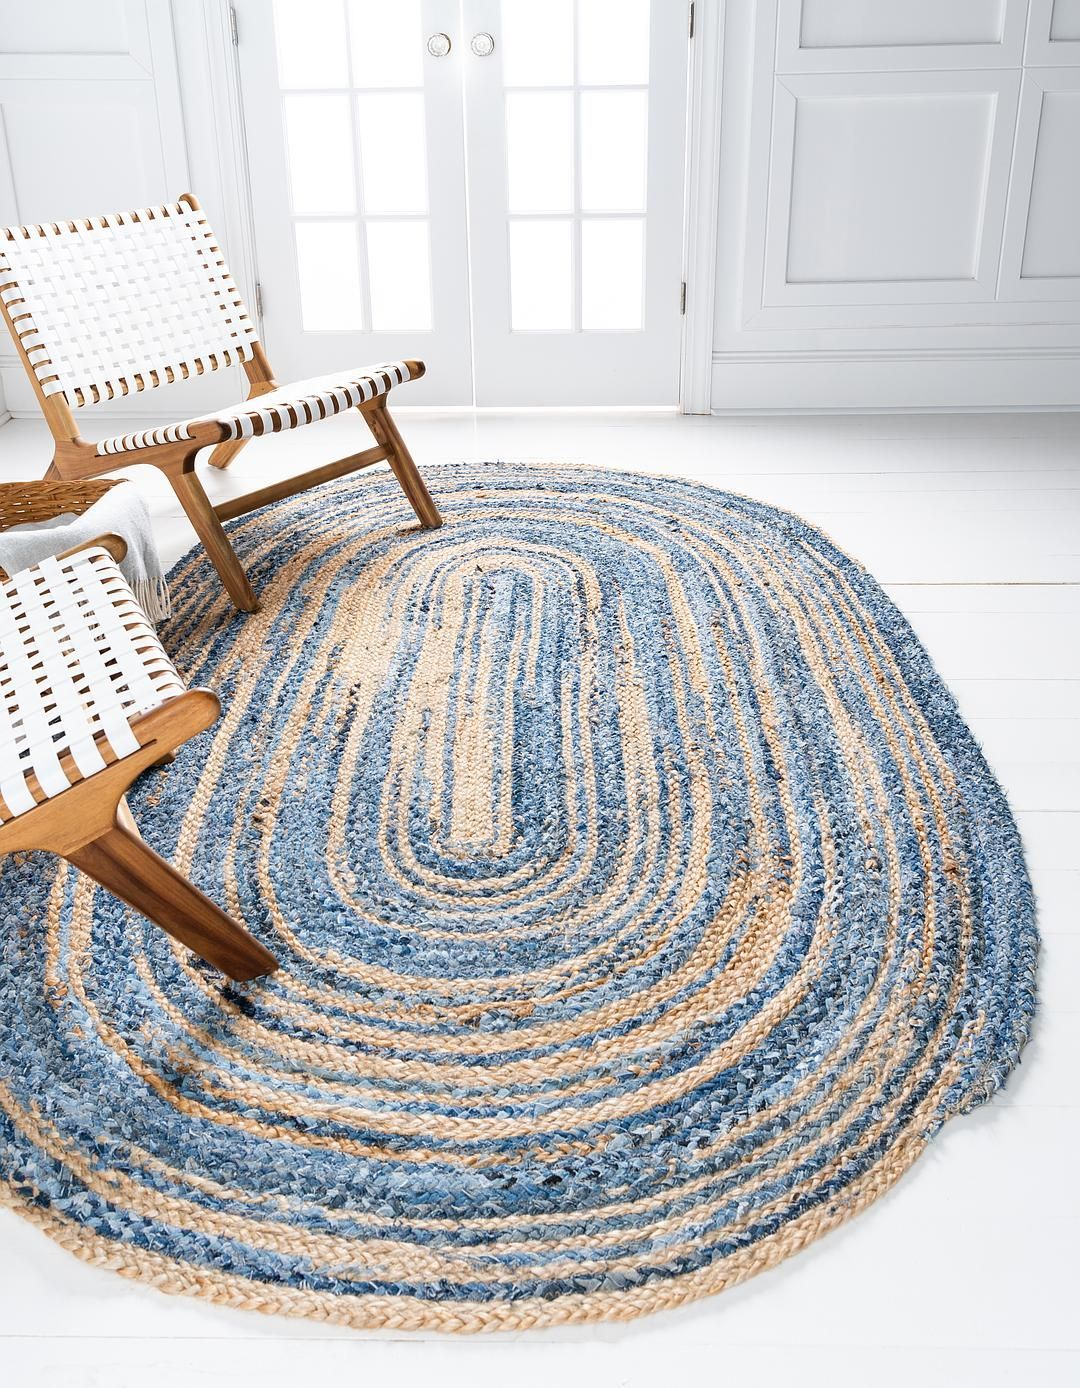 Blue 5 X 8 Braided Chindi Oval Rug Area Rugs Irugs Uk Oval Rugs Round Braided Rug Light Blue Rug